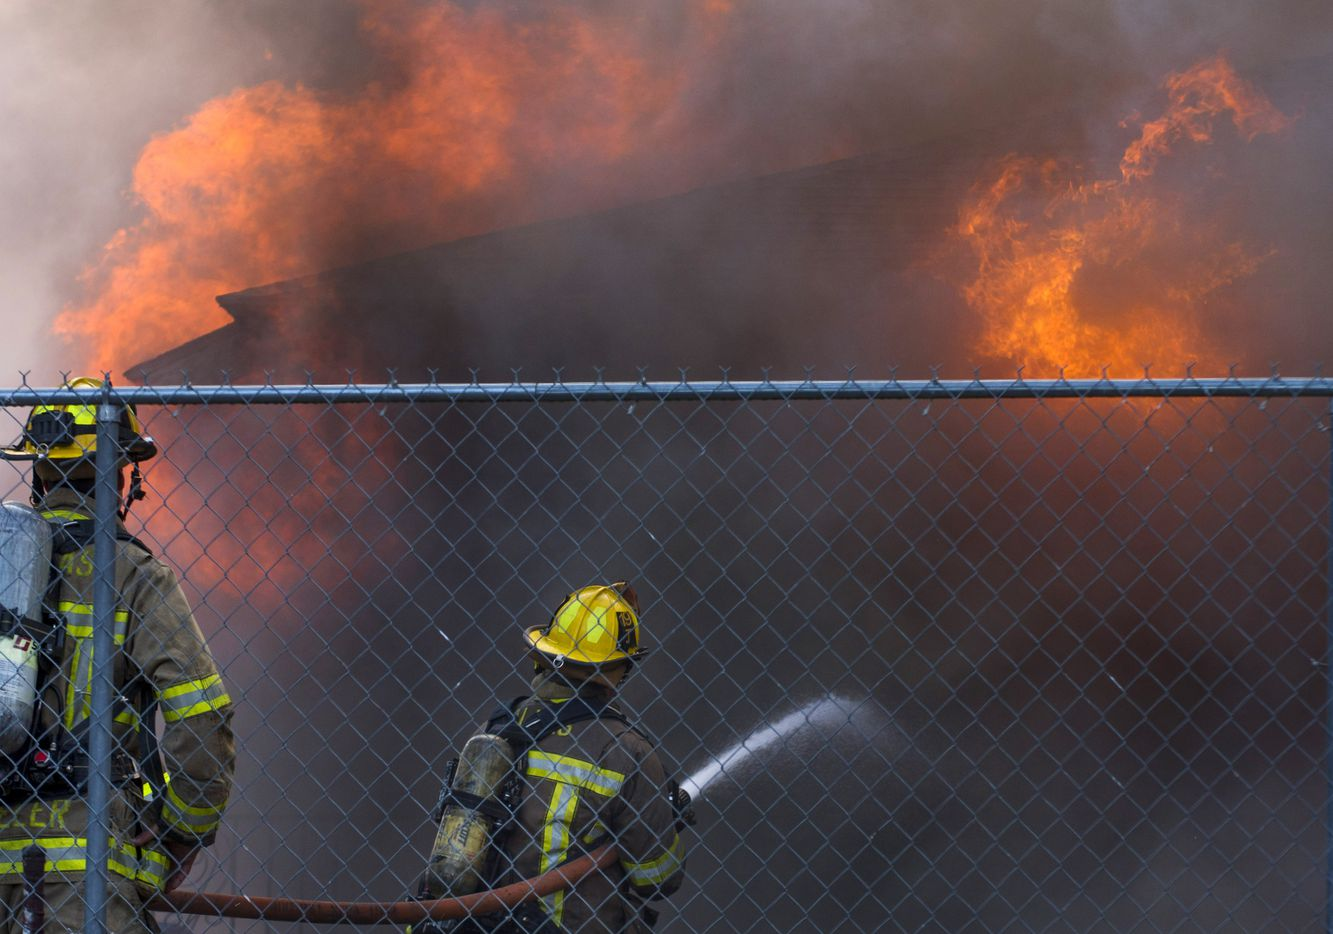 An empty apartment building caught fire in the 800 block of Ewing Avenue near Colorado Boulevard on Tuesday. The fire spread to a nearby building where eight residents were displaced.